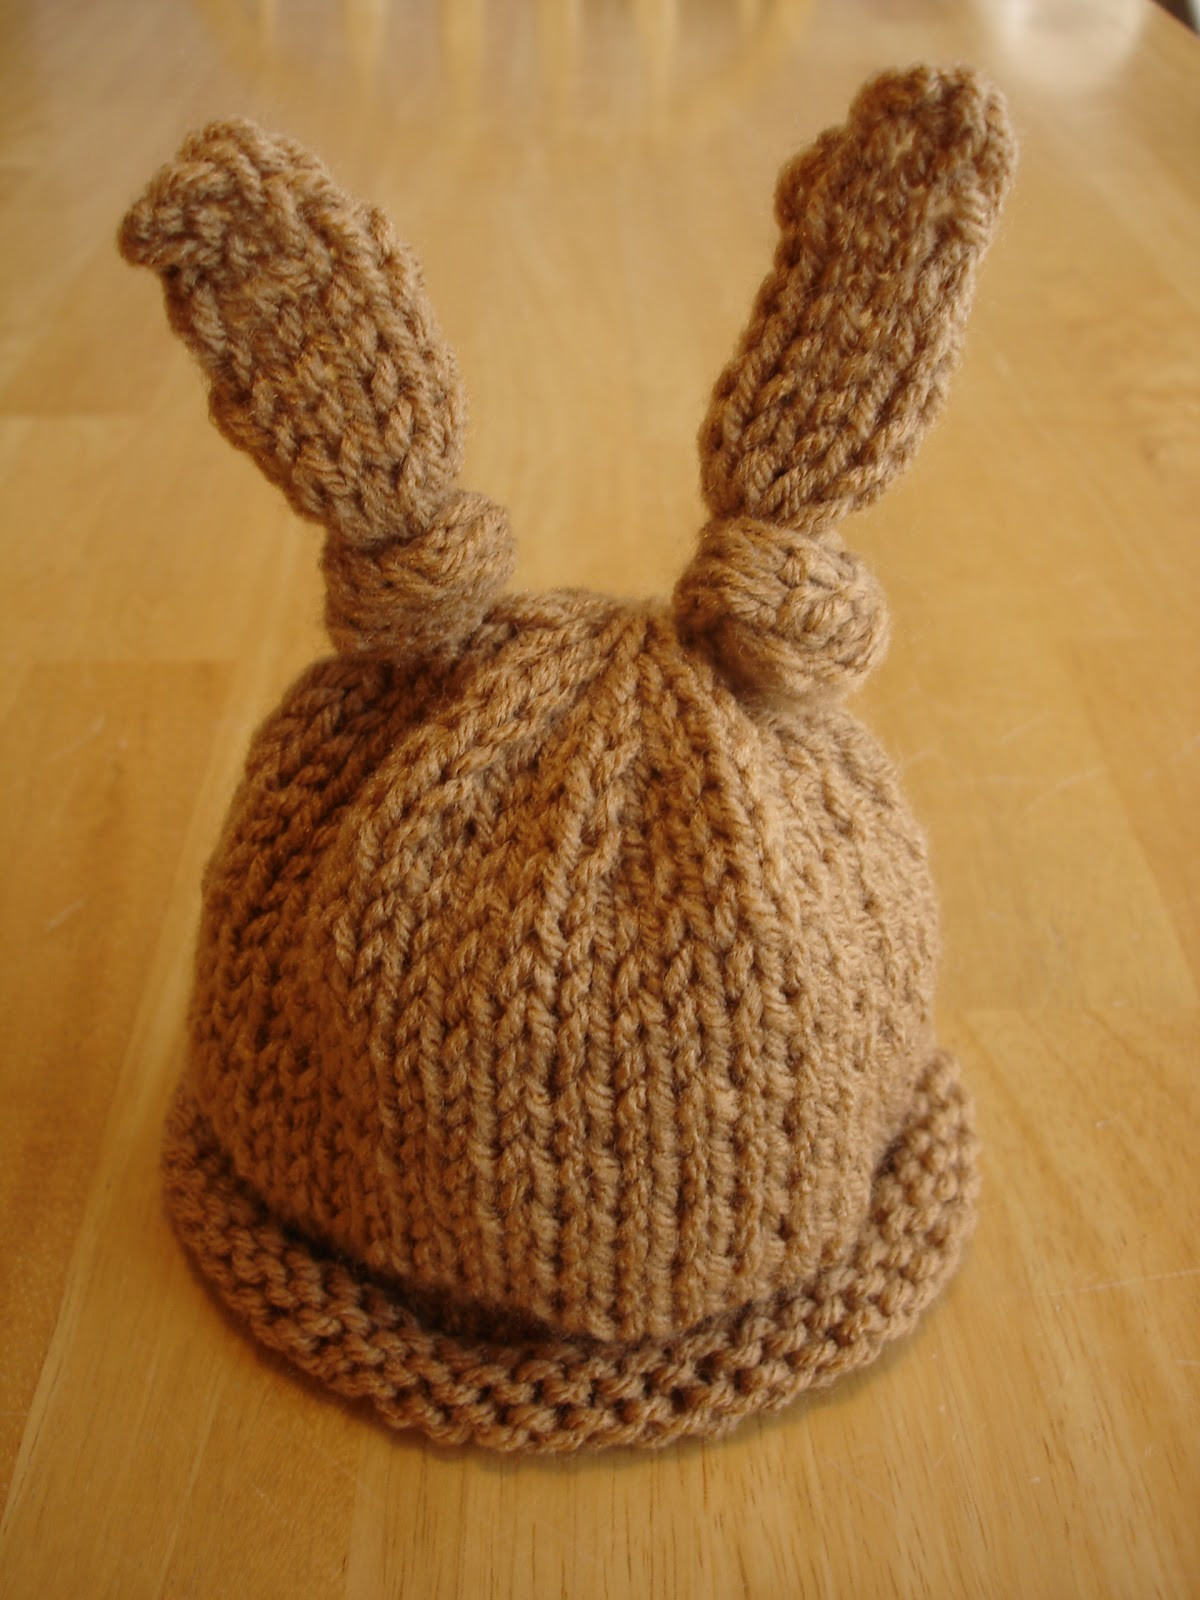 Free Knitting Patterns for Baby Hats New Fiber Flux Free Knitting Pattern Baby Bunny Newborn or Of Perfect 44 Models Free Knitting Patterns for Baby Hats